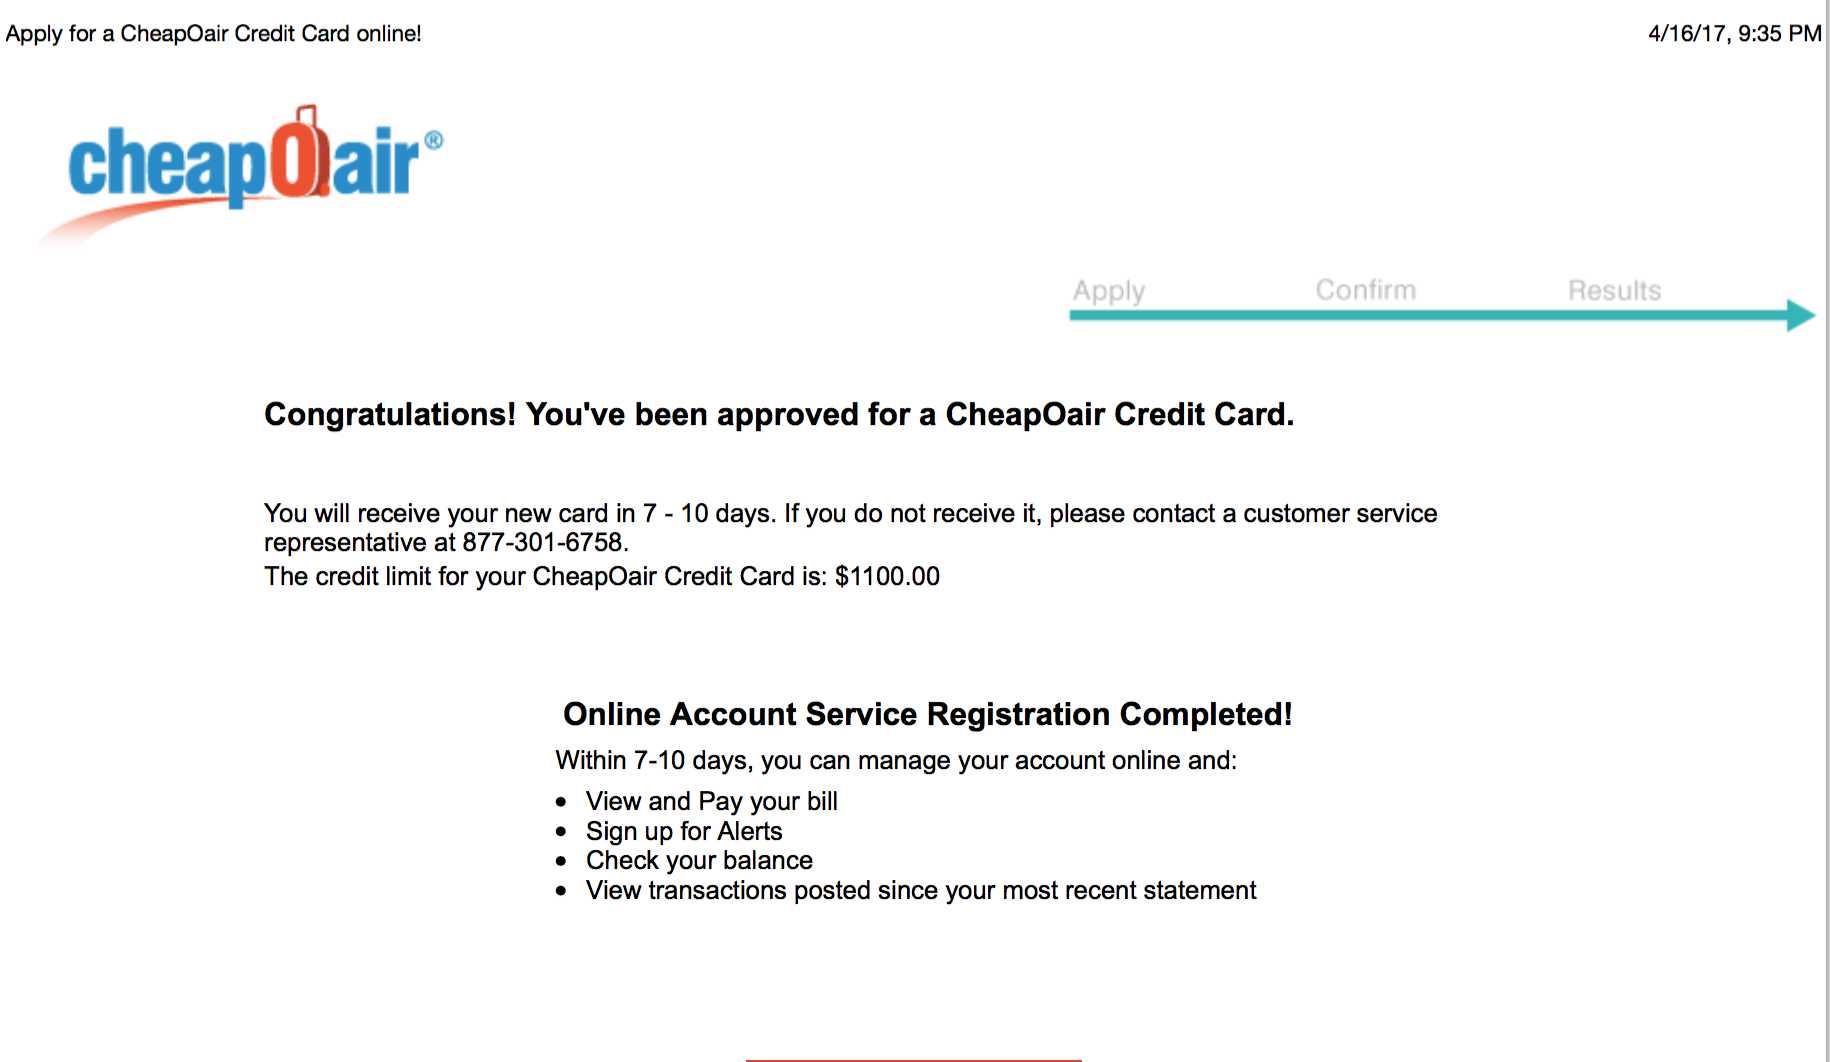 CheapOair Credit Card Synchrony Bank SYNCB myFICO Forums